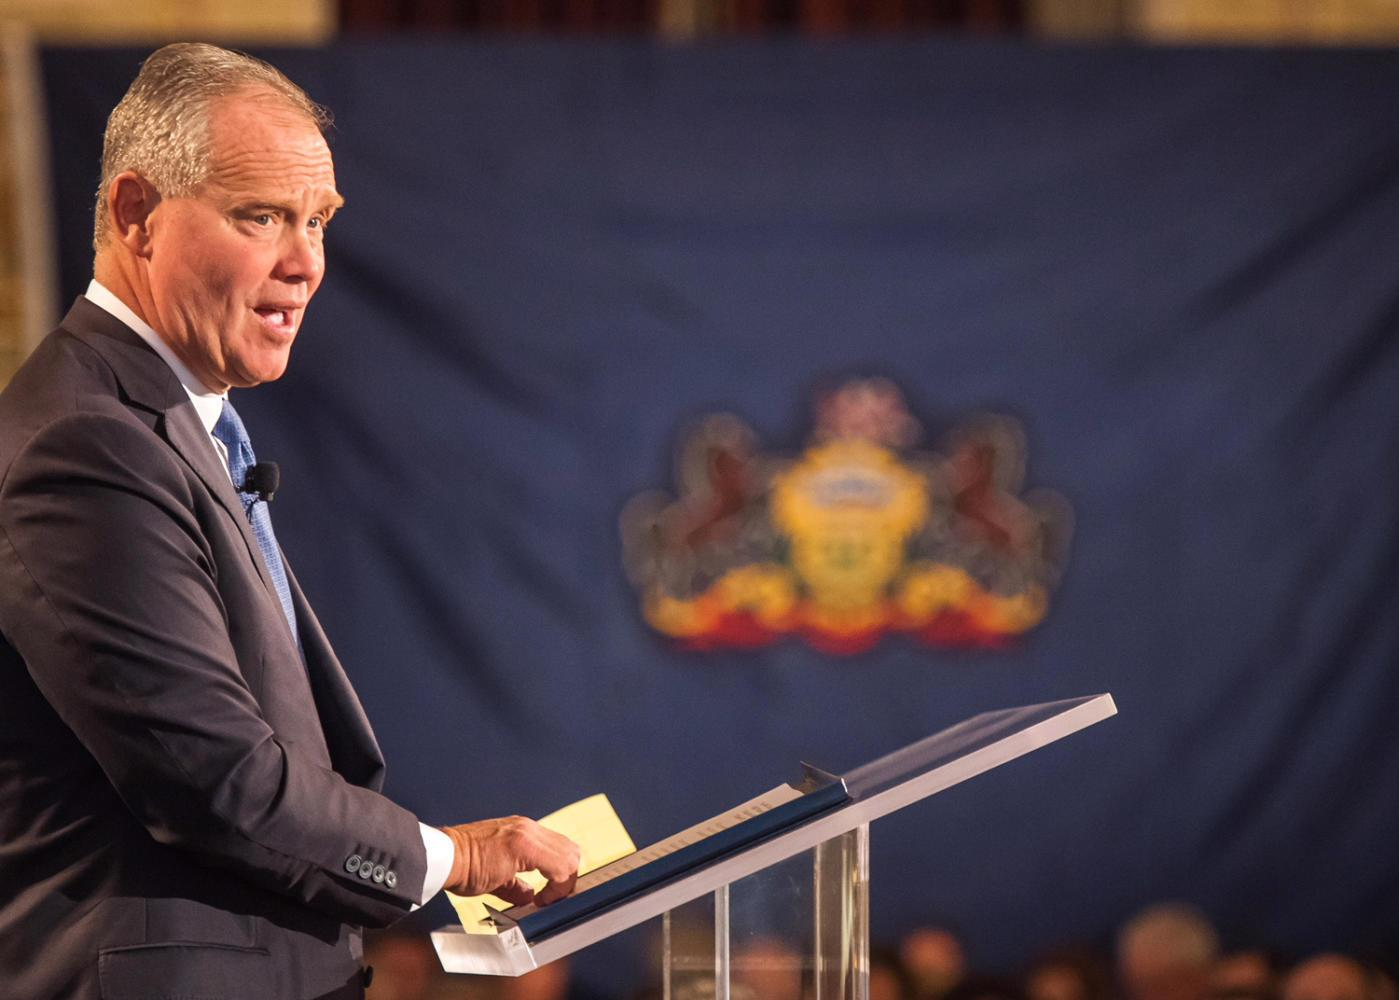 House Speaker Mike Turzai delivering a speech in October. (Image via Wikimedia Commons)